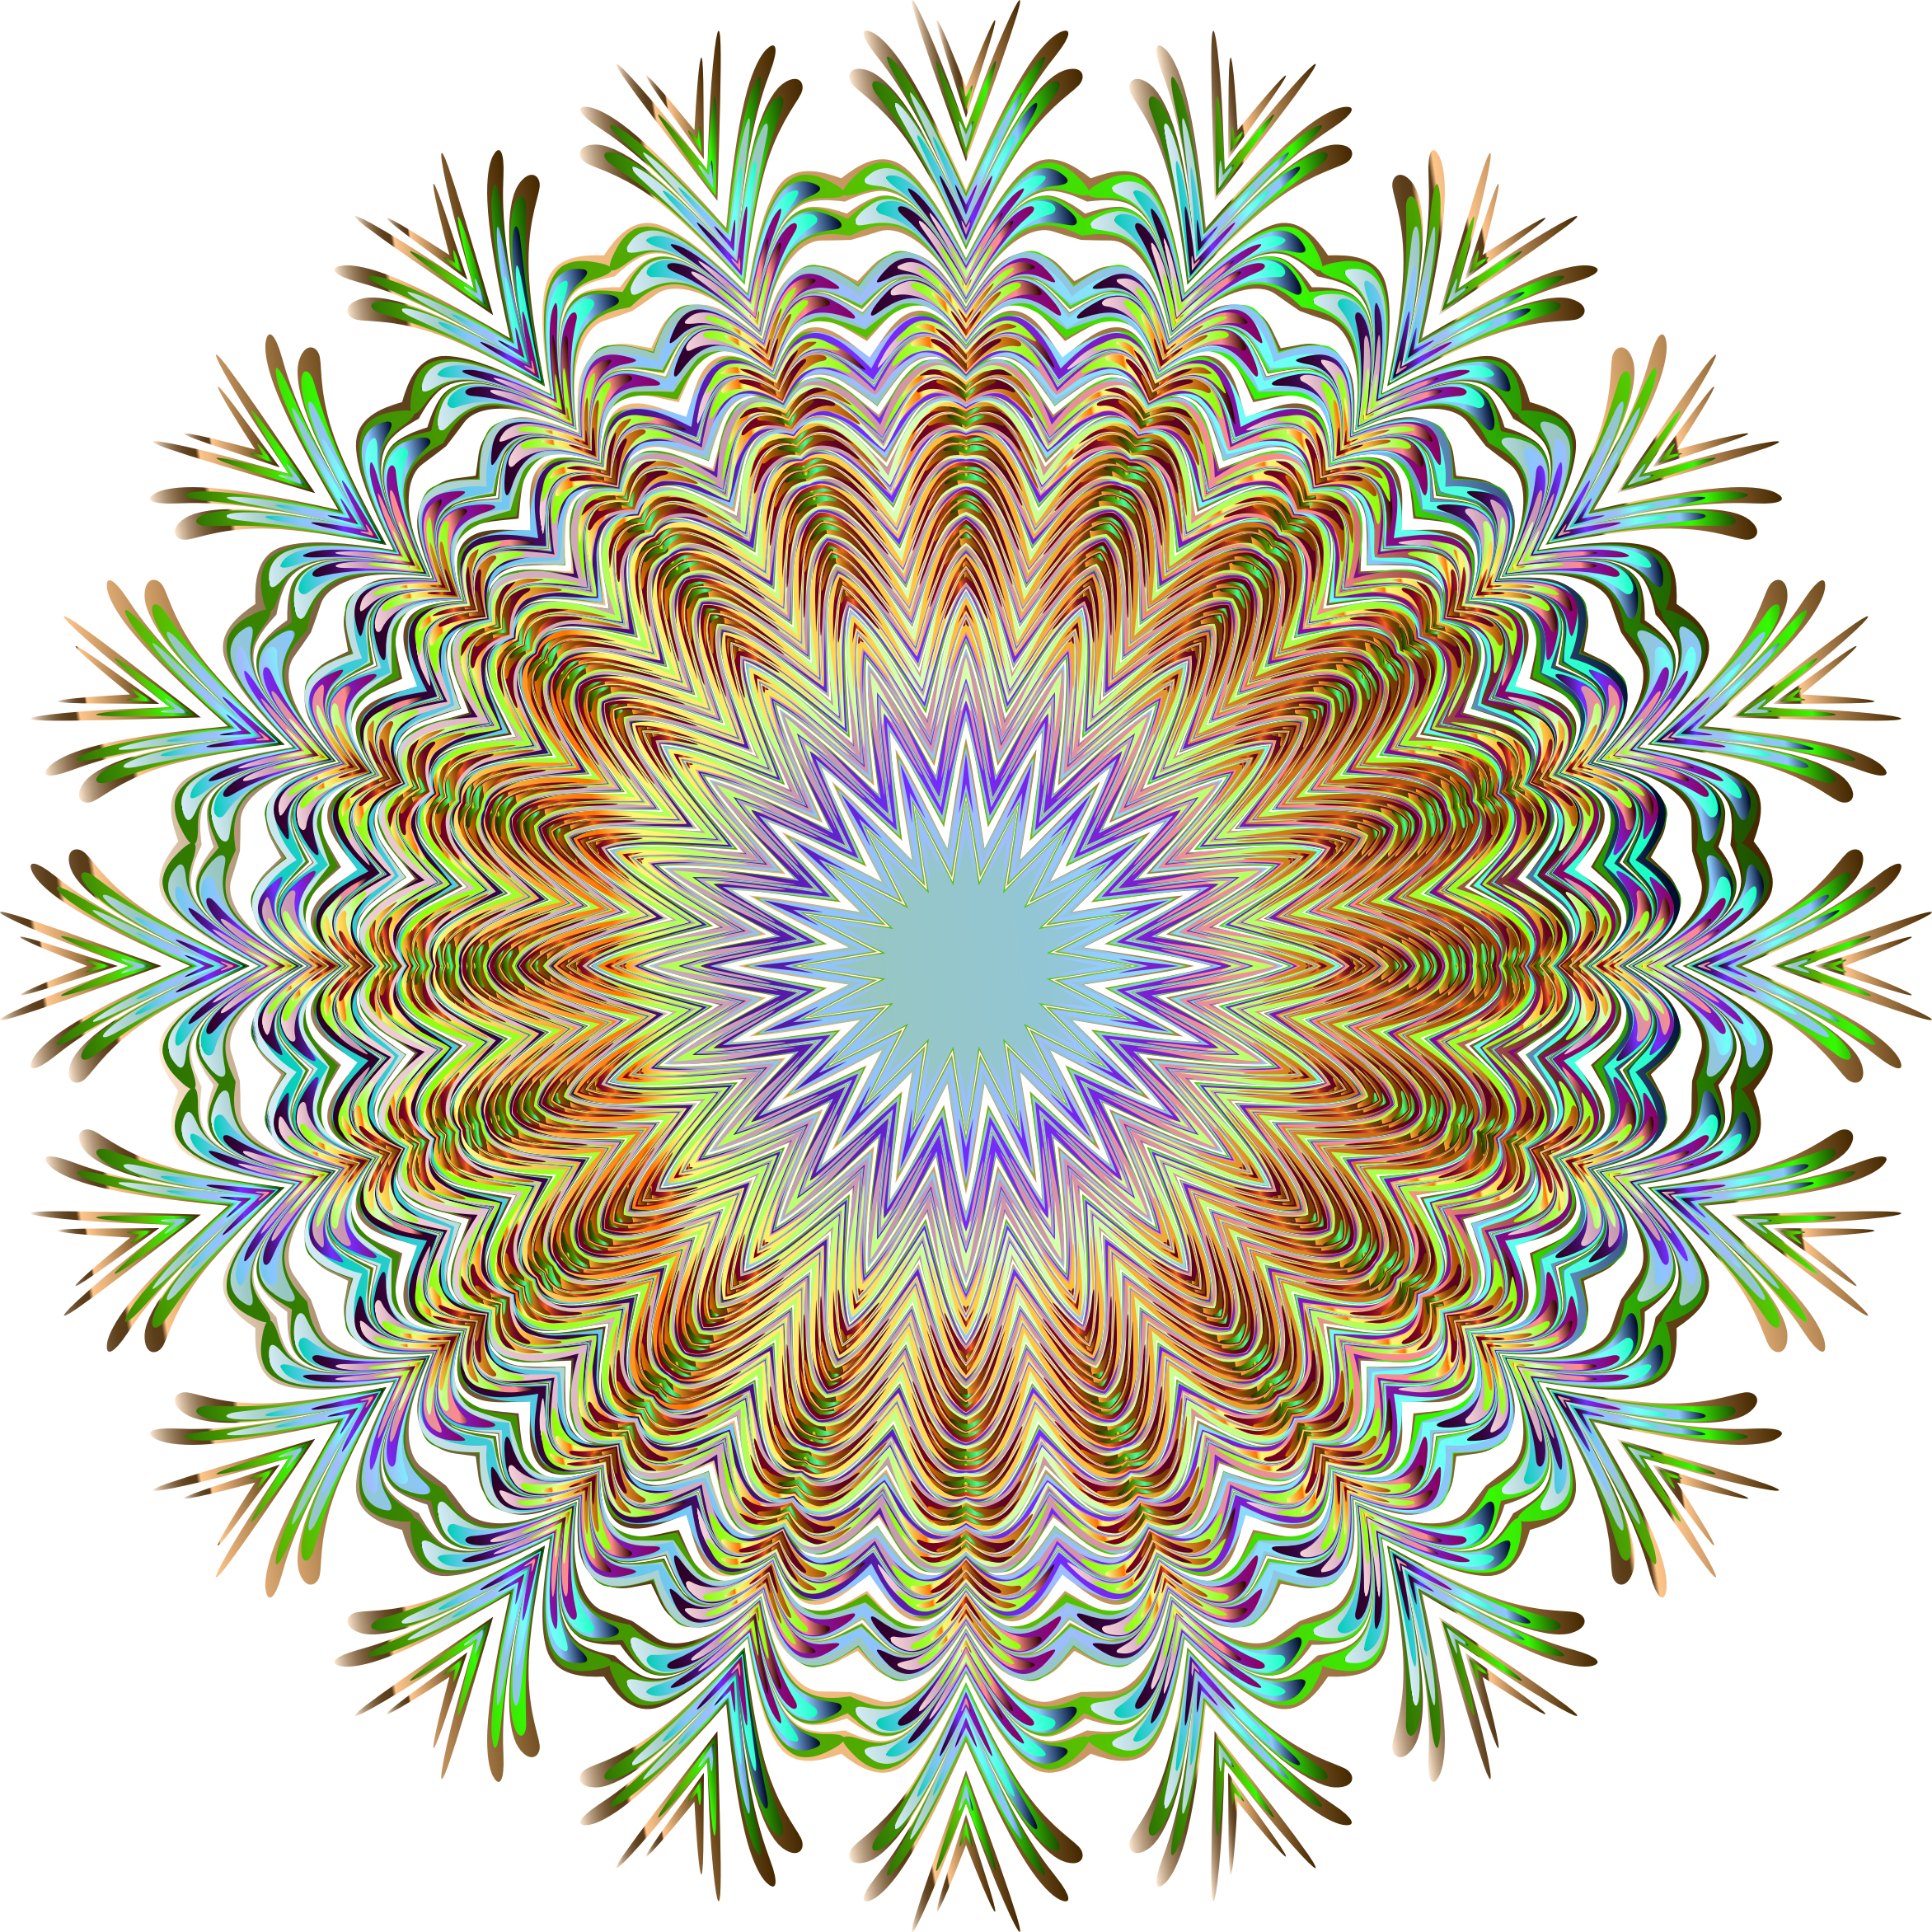 Chromatic Symmetric Mandala 3 No Background by GDJ